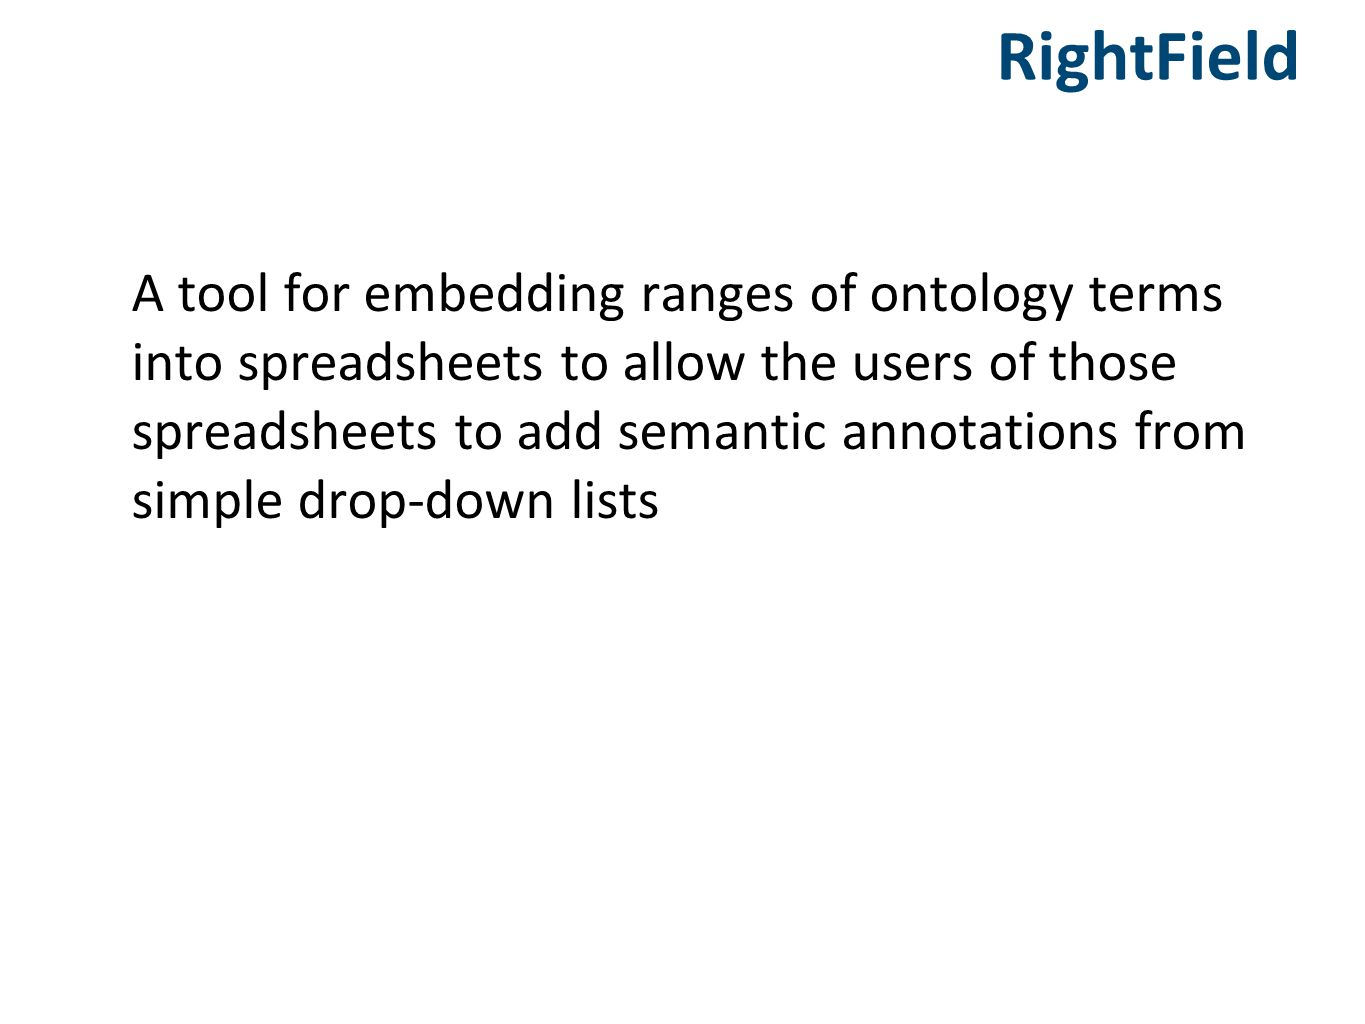 RightField A tool for embedding ranges of ontology terms into spreadsheets to allow the users of those spreadsheets to add semantic annotations from s